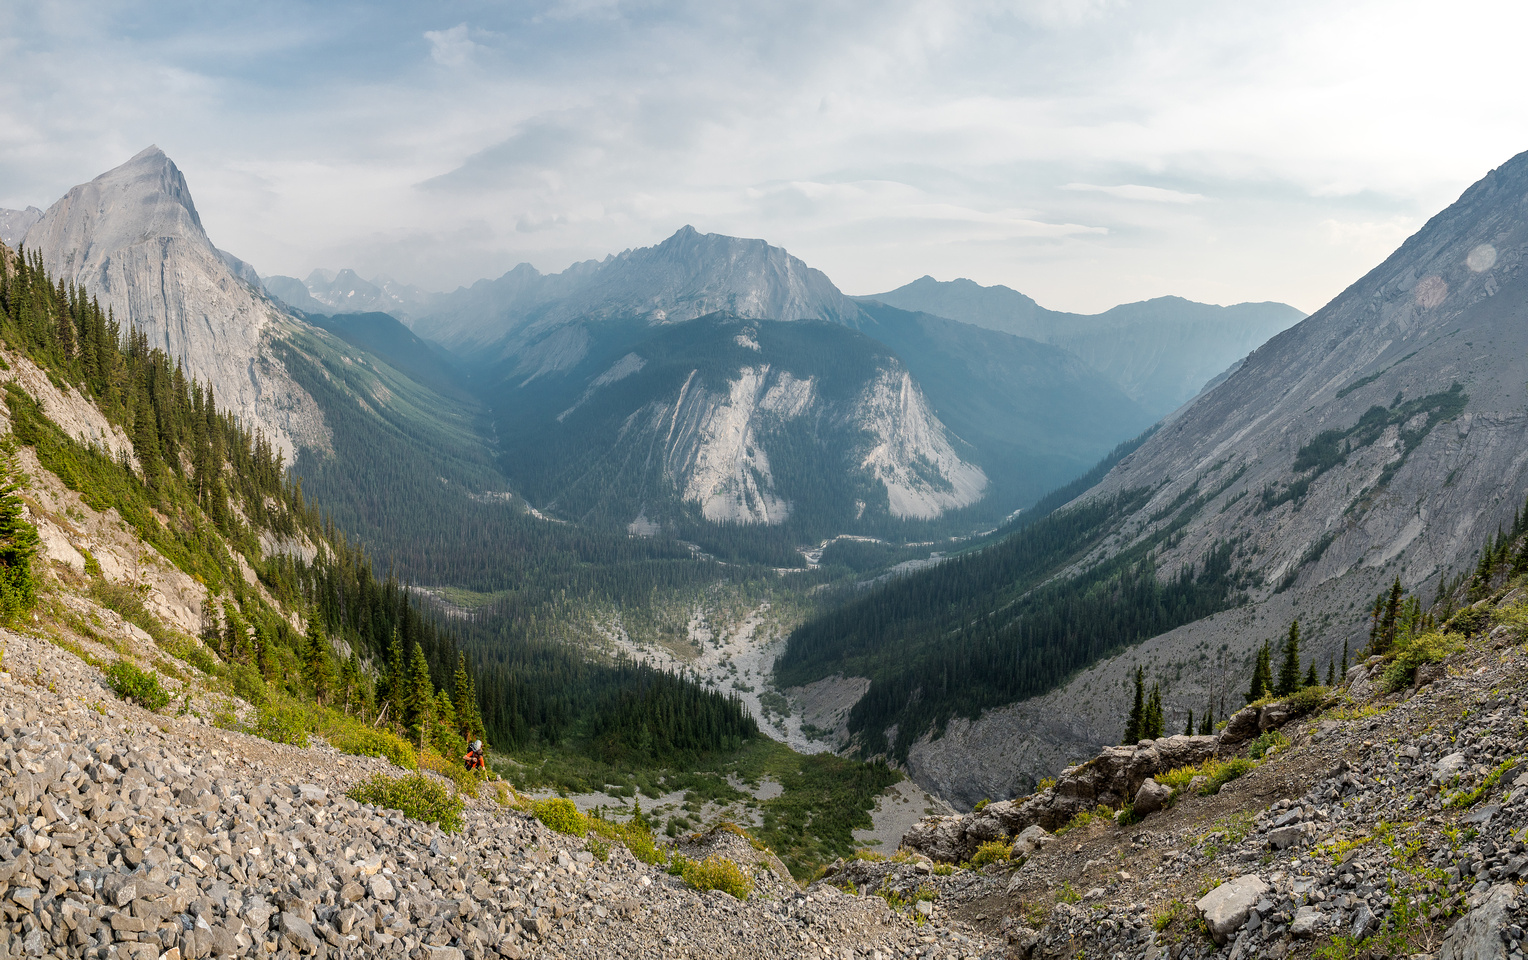 Views down our approach and up the Kananaskis River Valley towards Turbine Canyon and the Haig Glacier. Putnik at left and Hermione Peak at center.